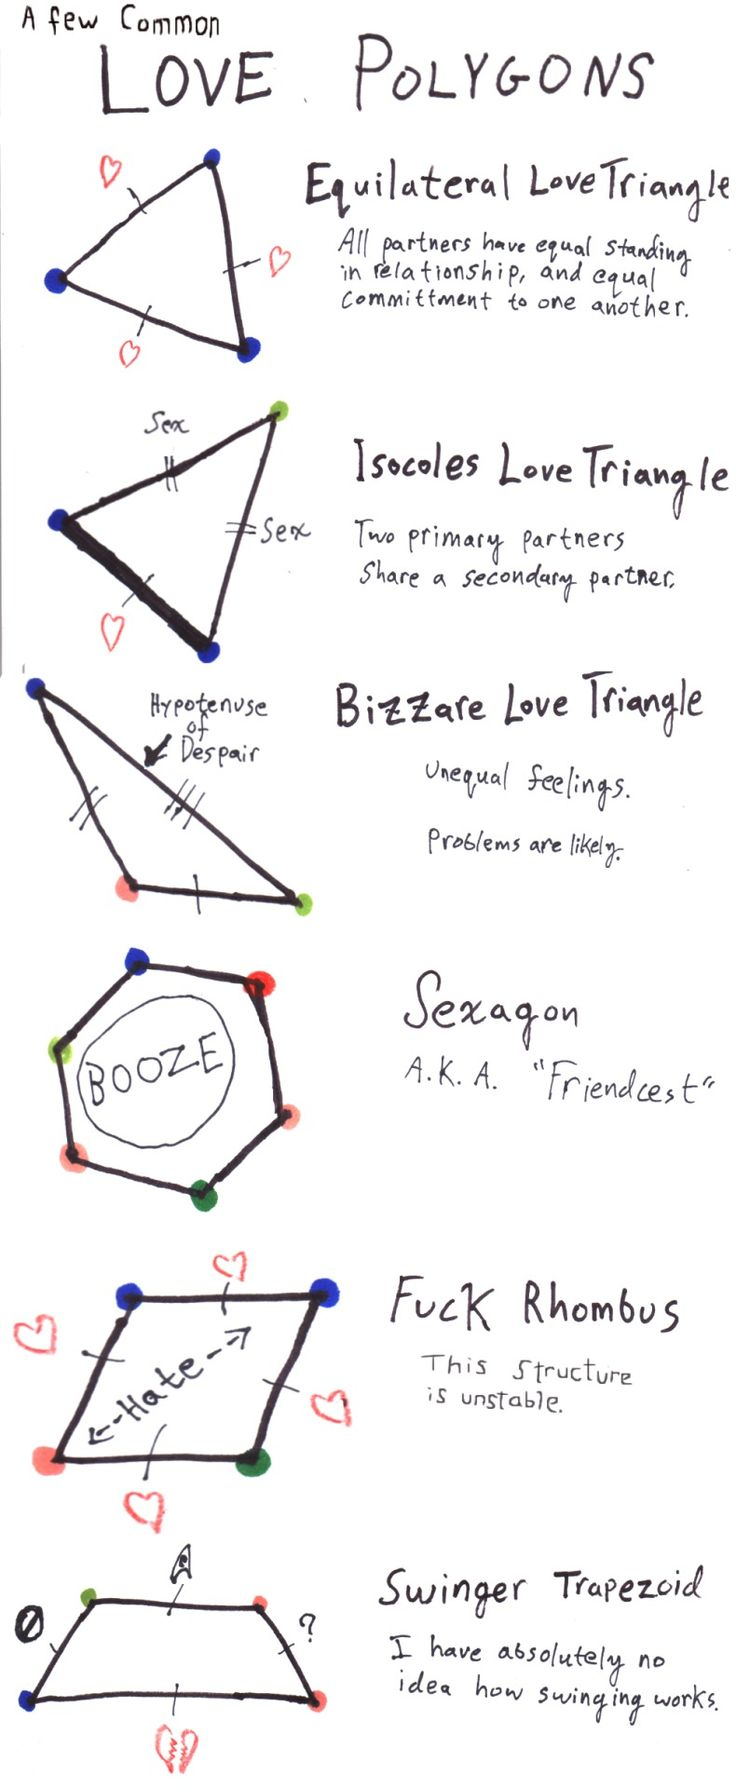 """This was obviously created more in jest, but I love the idea of using the geometric properties of polygons to explore the emotional nuances of various relationship configurations. The equilateral love triangle compared to the isosceles love triangle is great. I think the other one should technically be an """"obtuse love triangle,"""" though, and only right triangles have hypotenuses."""